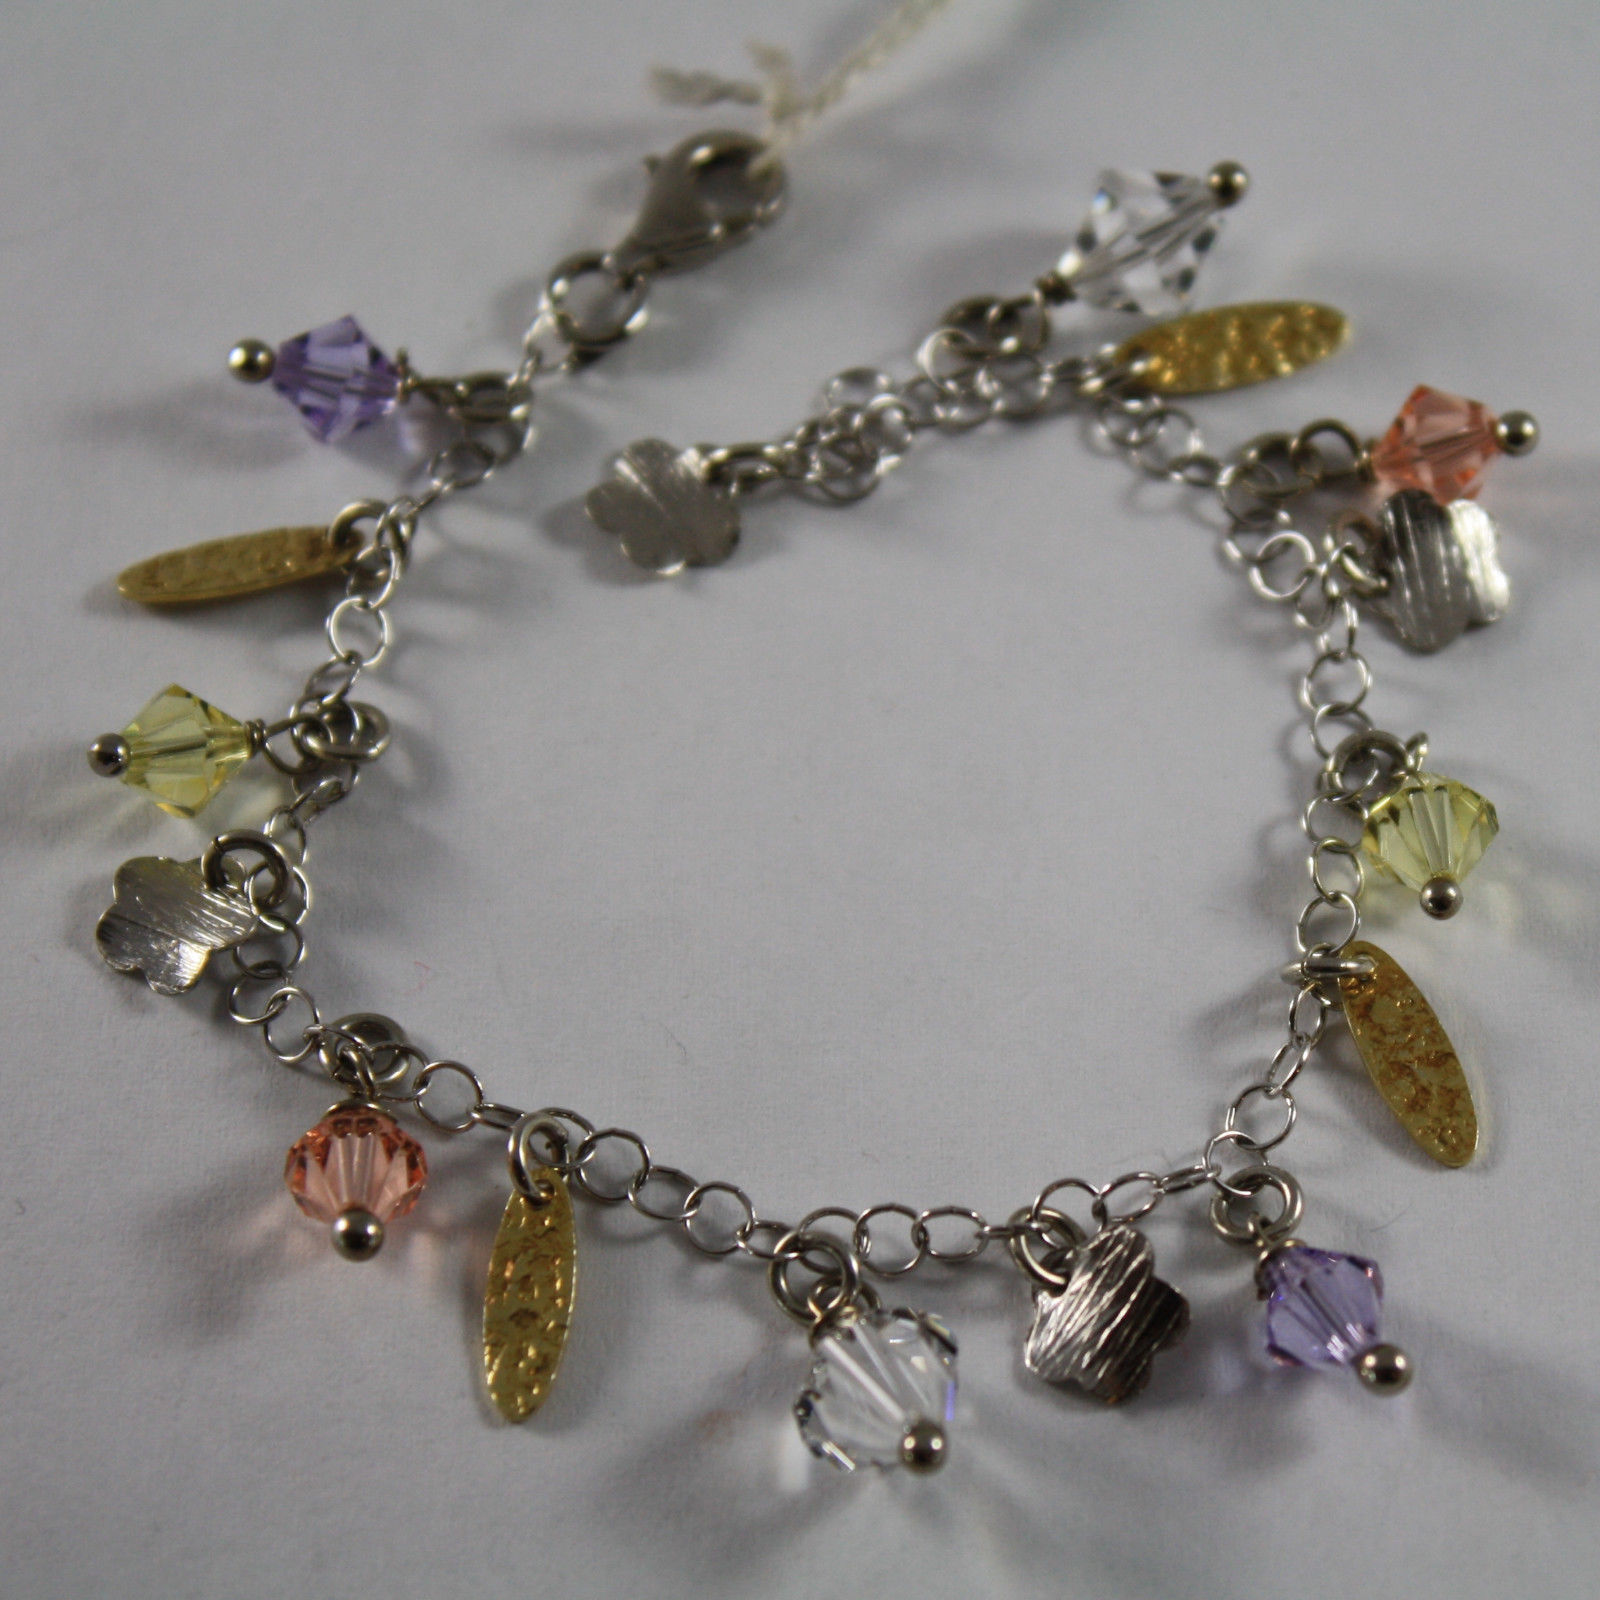 .925 RHODIUM SILVER AND YELLOW GOLD PLATED BRACELET WITH CRISTAL AND CHARMS